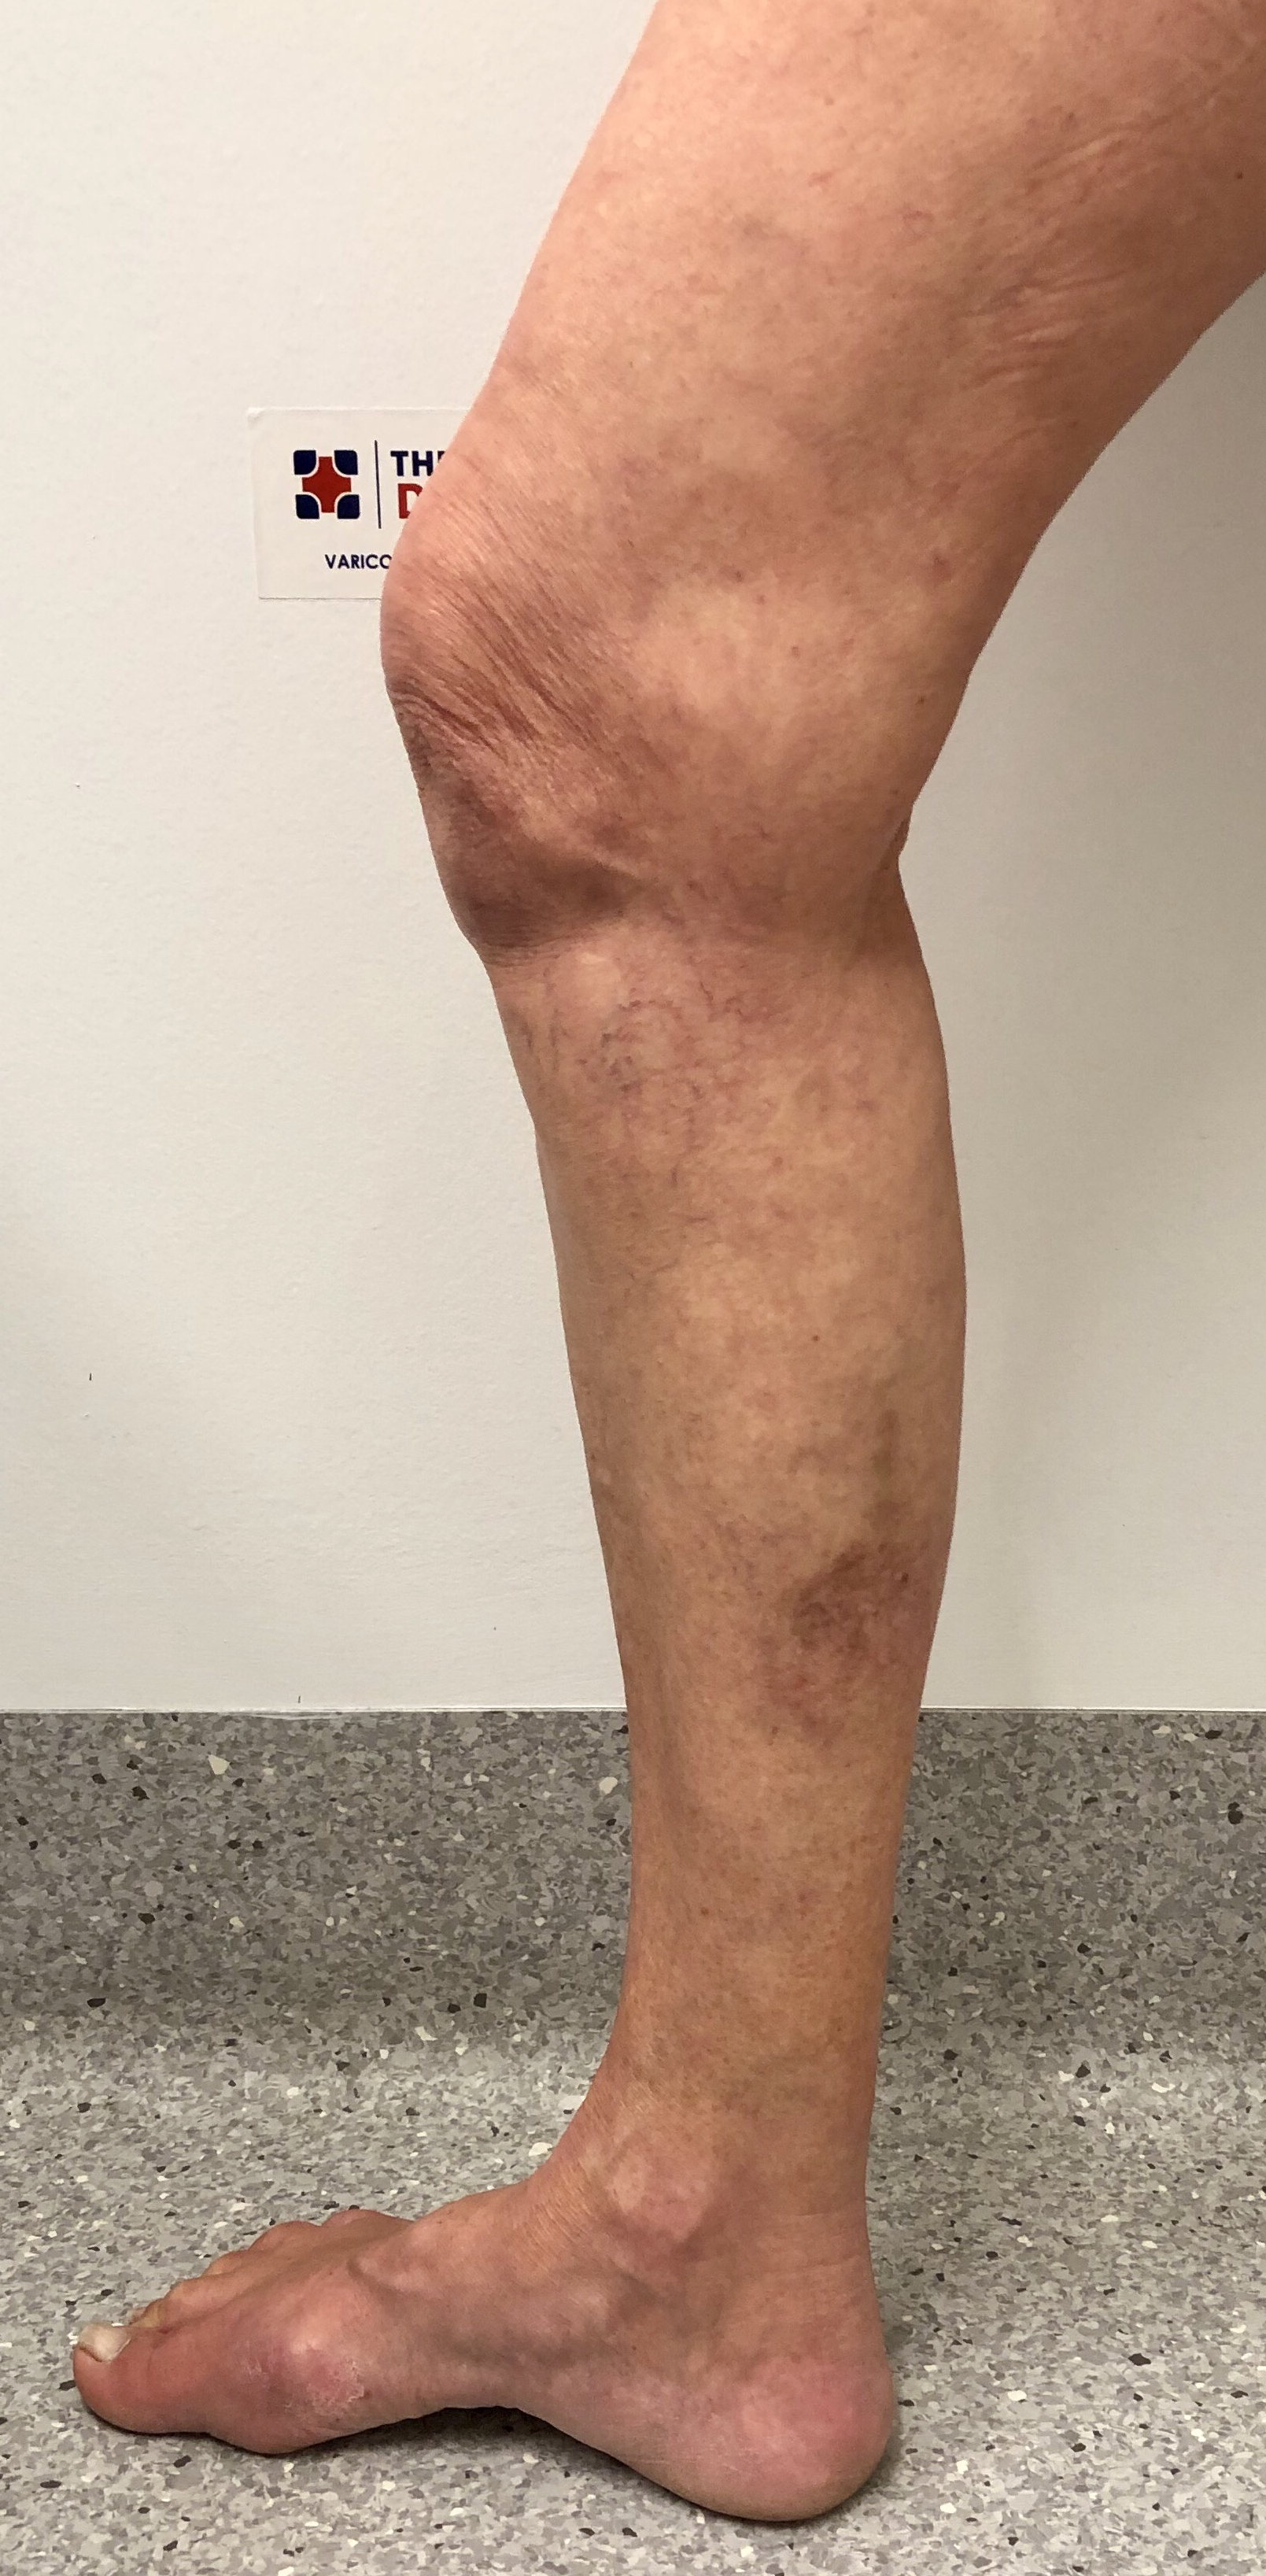 Treatment:Endovenous Laser Ablation and Ultrasound Guided Sclerotherapy. - Not hospitalized - Treated as an outpatient.Appearance at Six months post treatment.